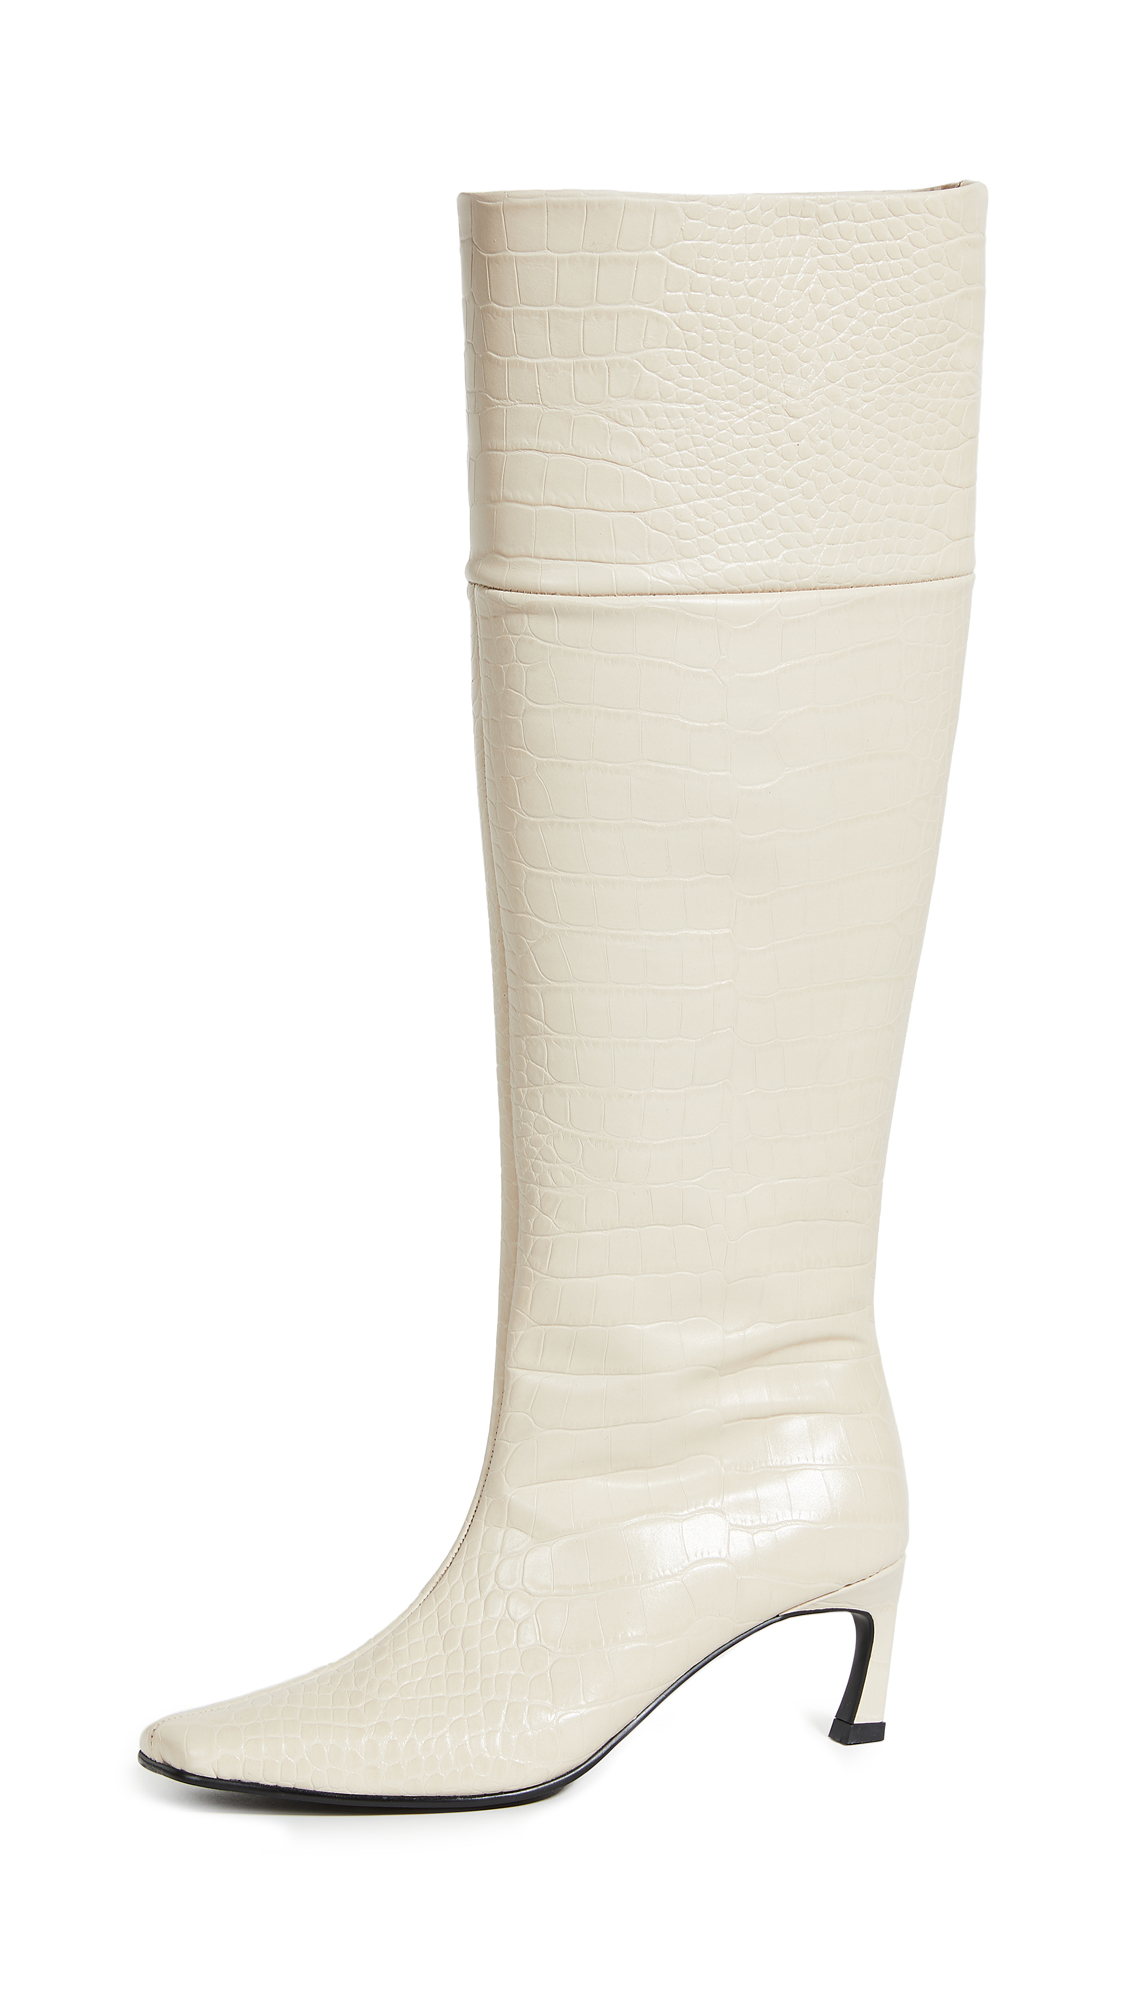 Reike Nen Pointed Square Mid-heel Long Boots In Cream